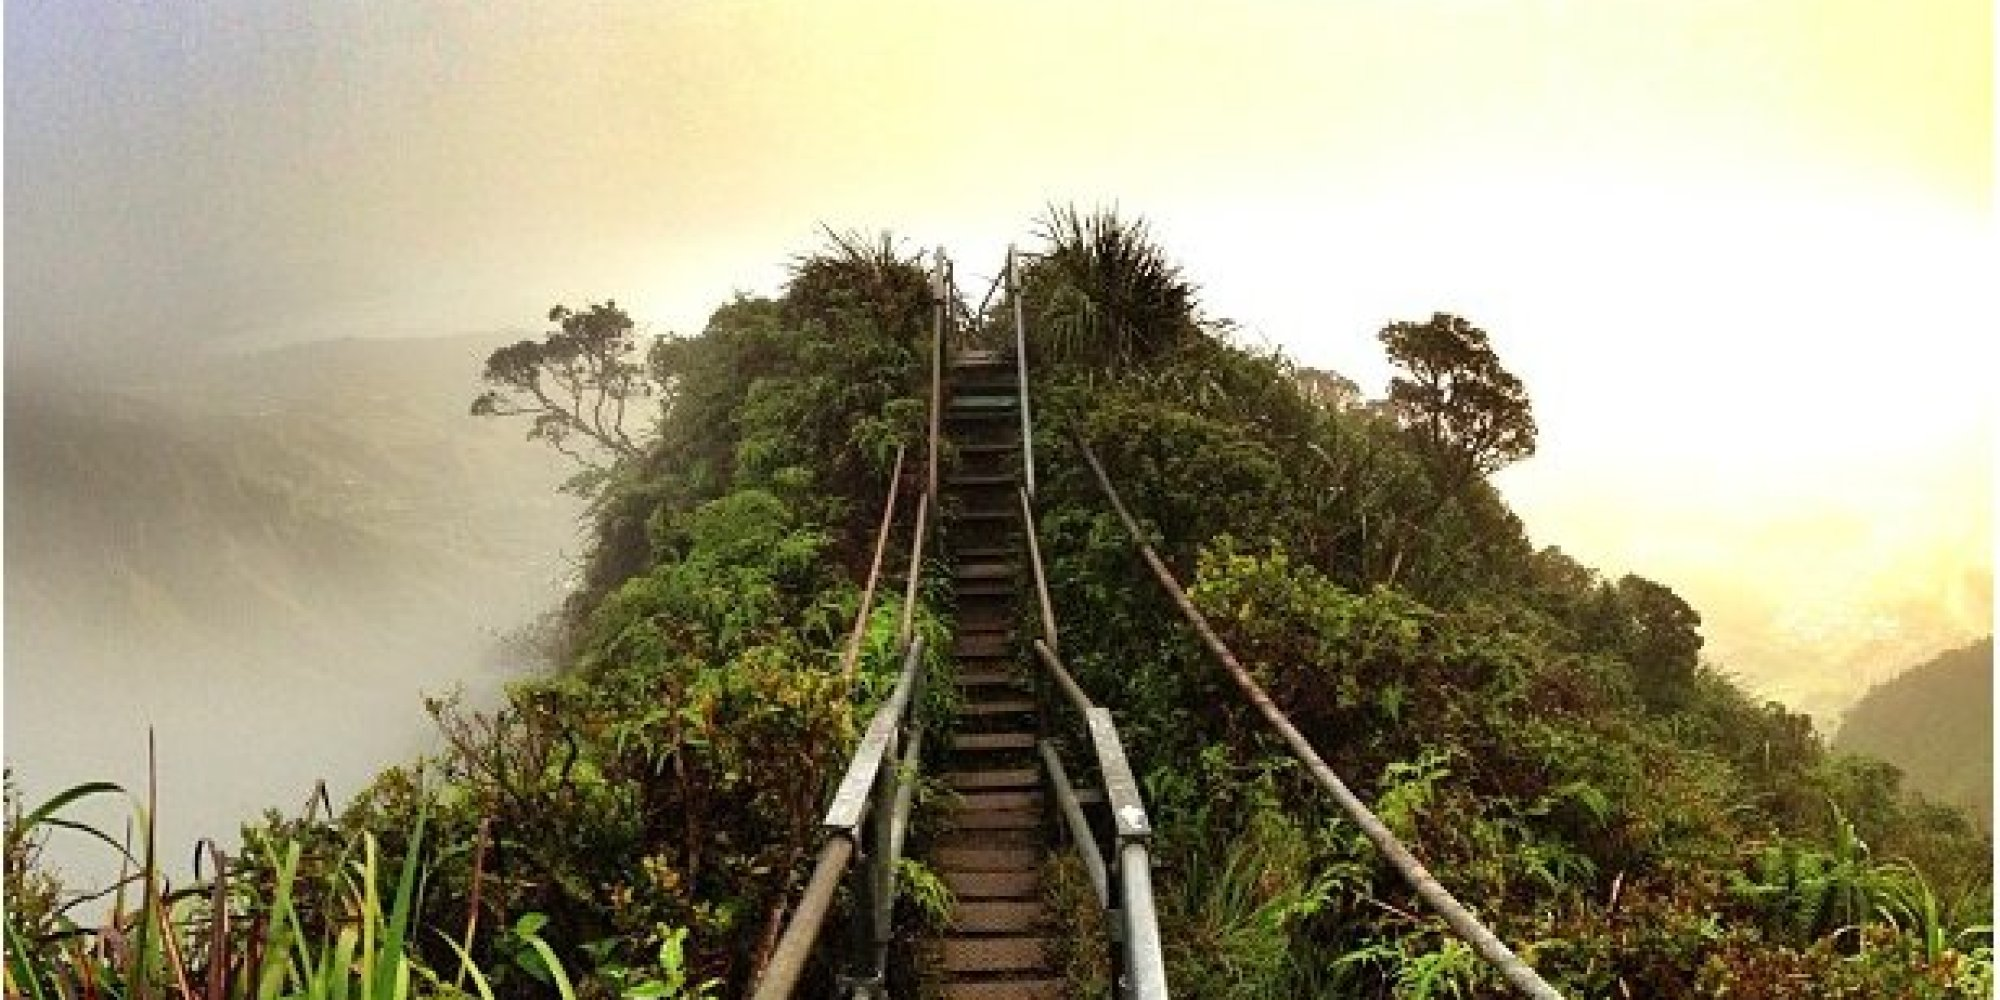 15) Bonus! Haiku Stairs (Stairway To Heaven) in Hawaii 4